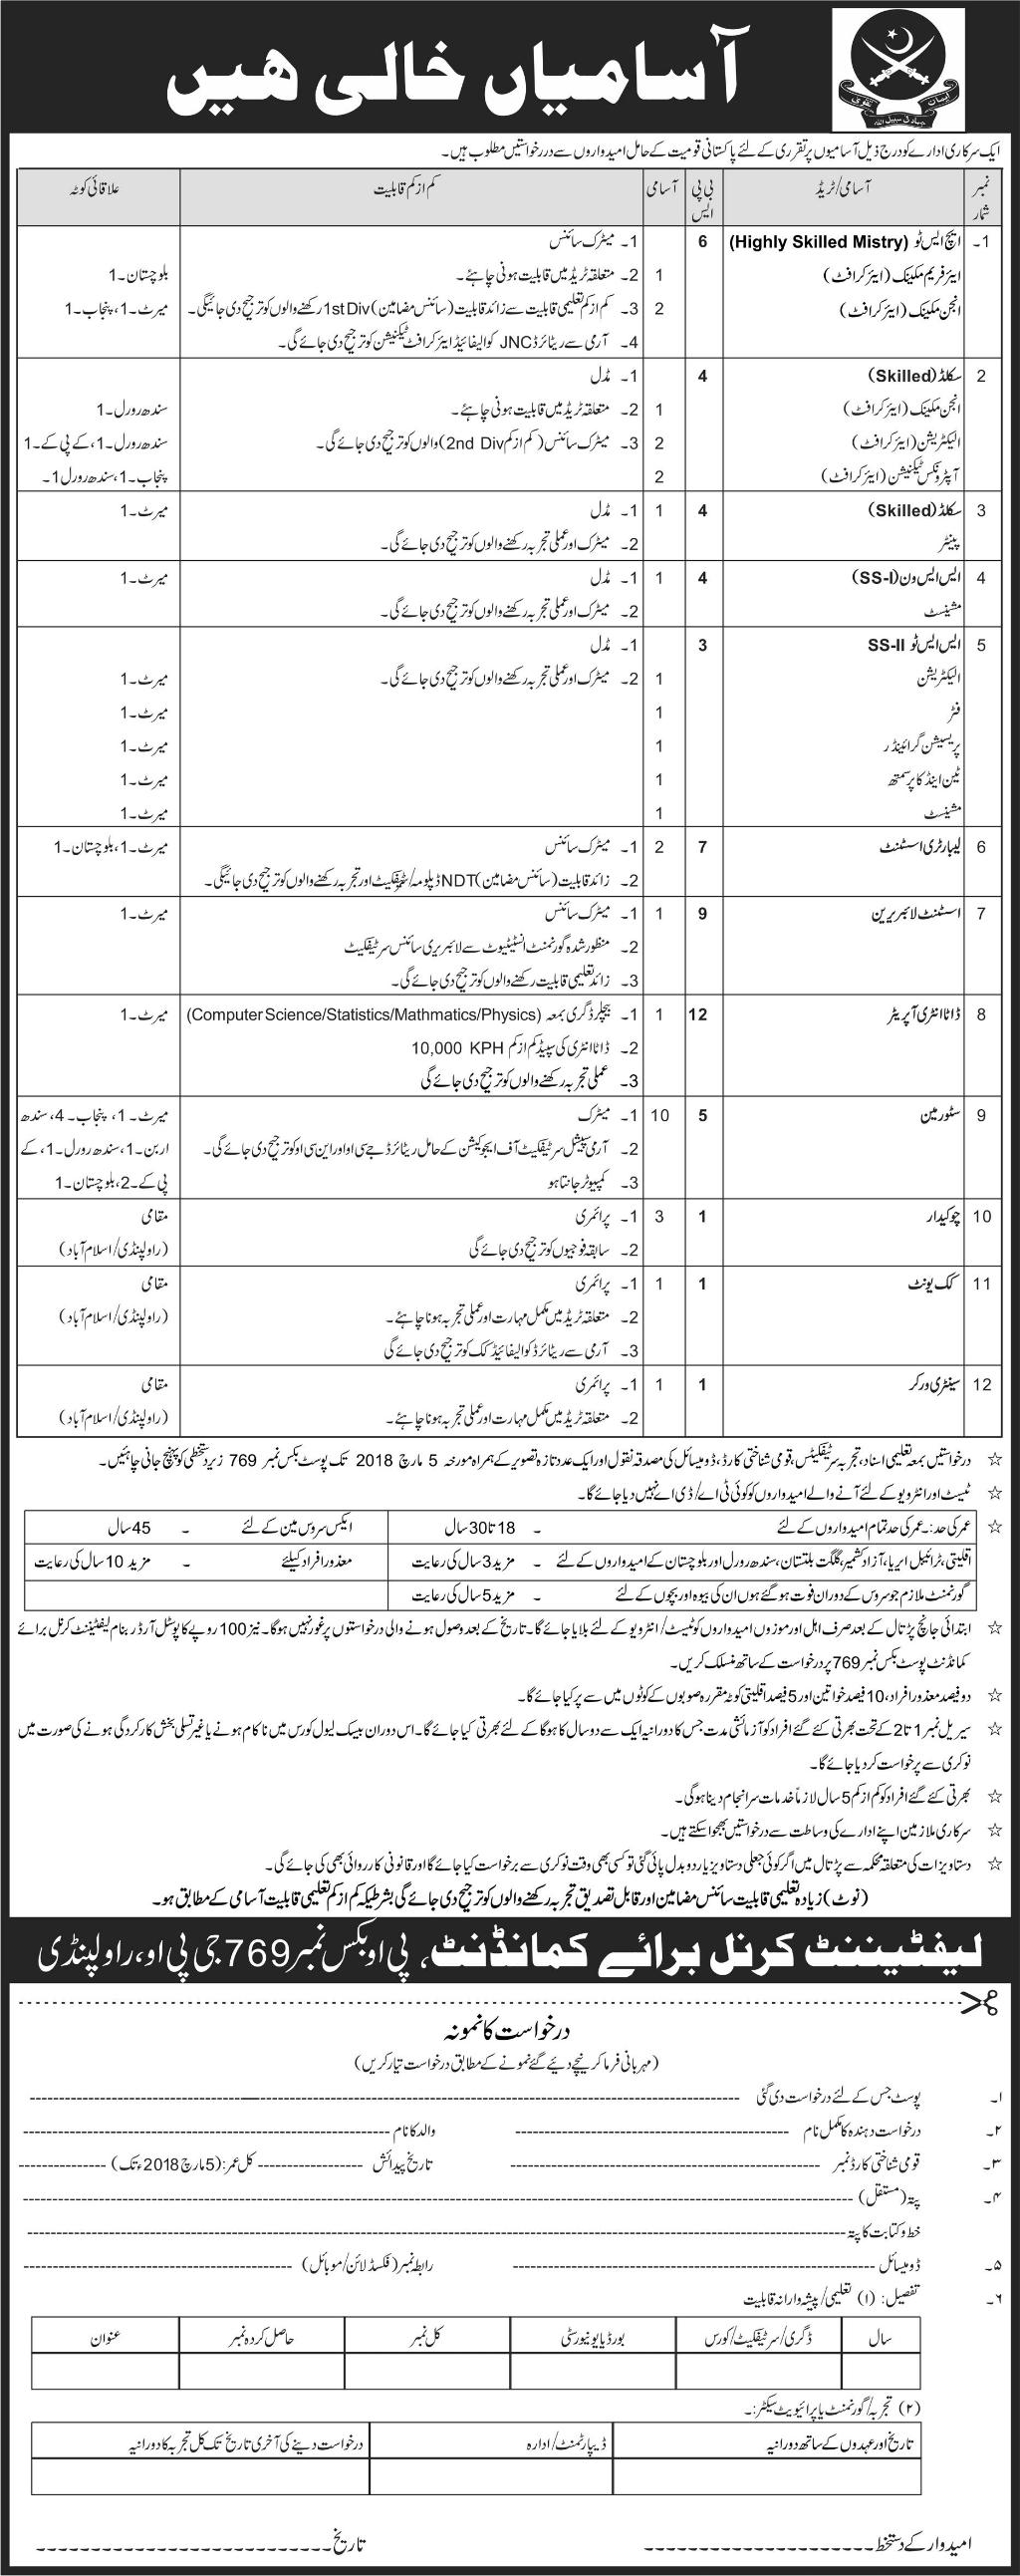 HS-II, Skill Workers, Painters, Machinists Job in Govt Dept